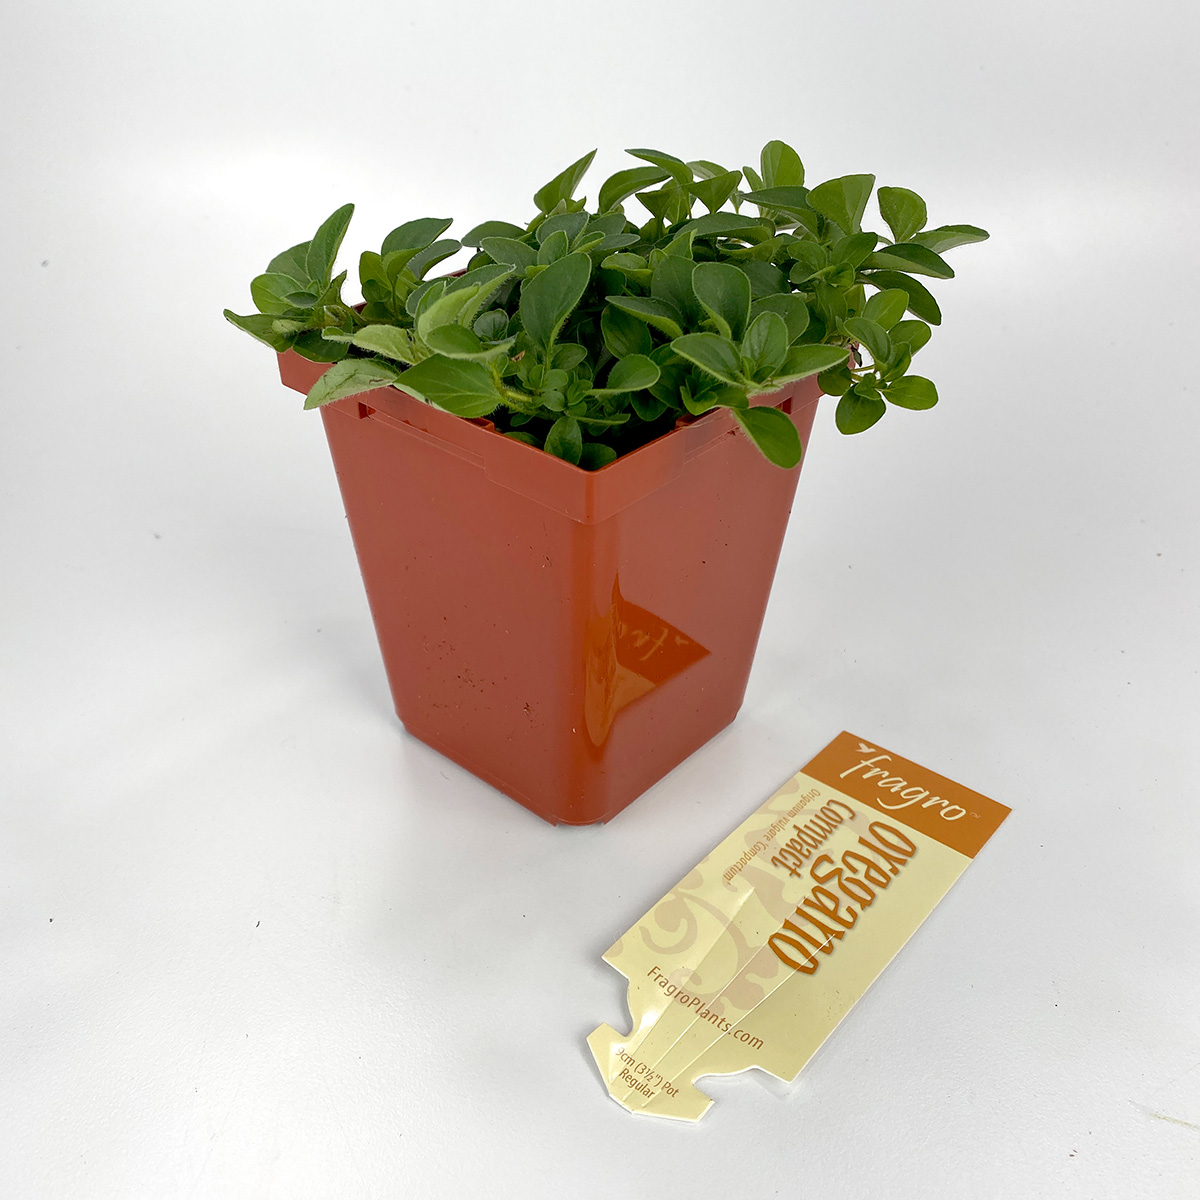 Oregano Compact 4in